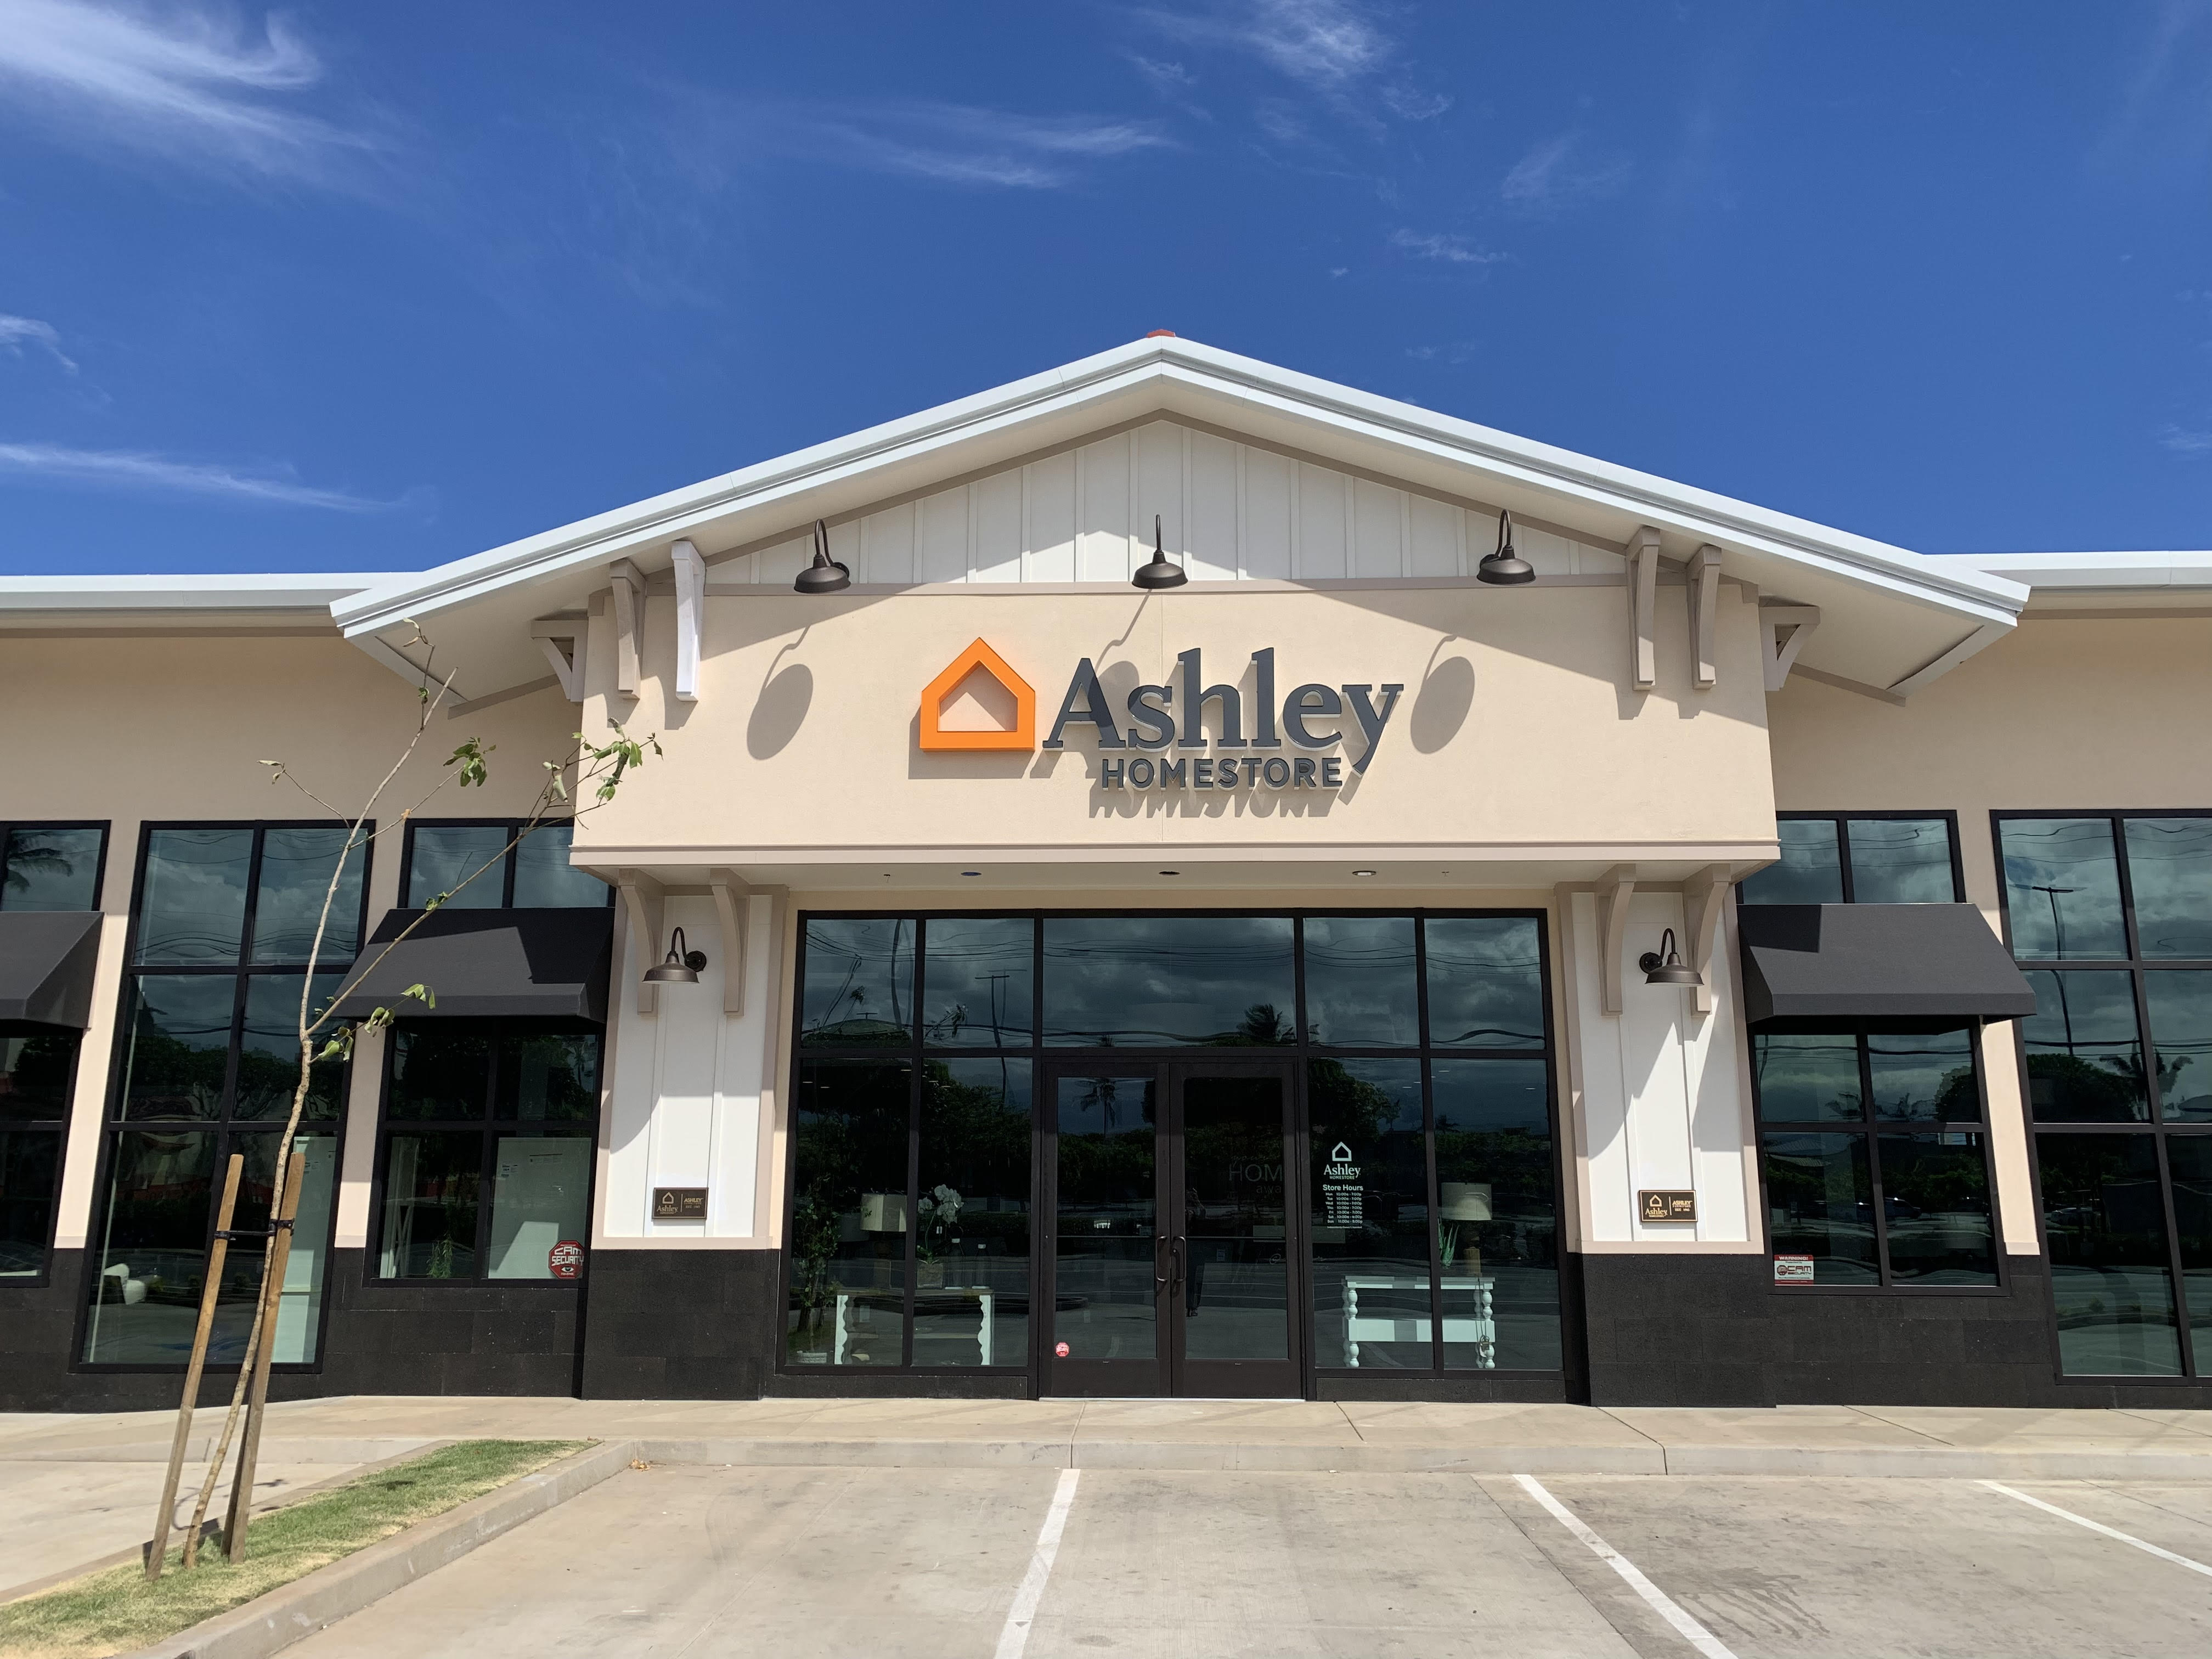 Ashley HomeStore to Open in Kahului, Maui